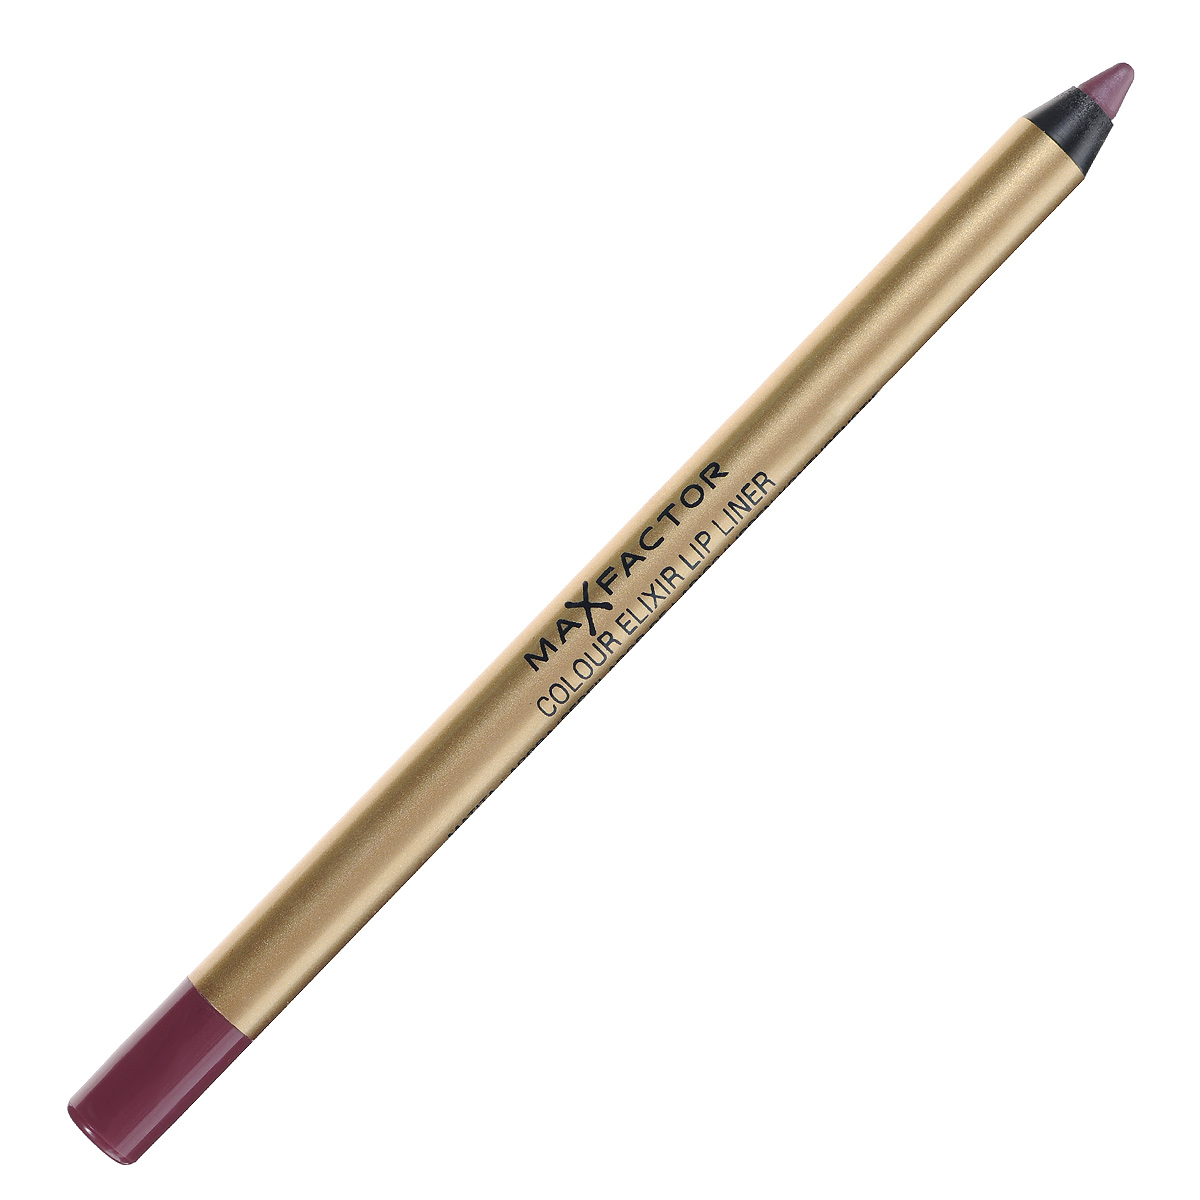 Max Factor Карандаш для губ Colour Elixir Lip Liner, тон №06 mauve moment, цвет: лиловый рация астана